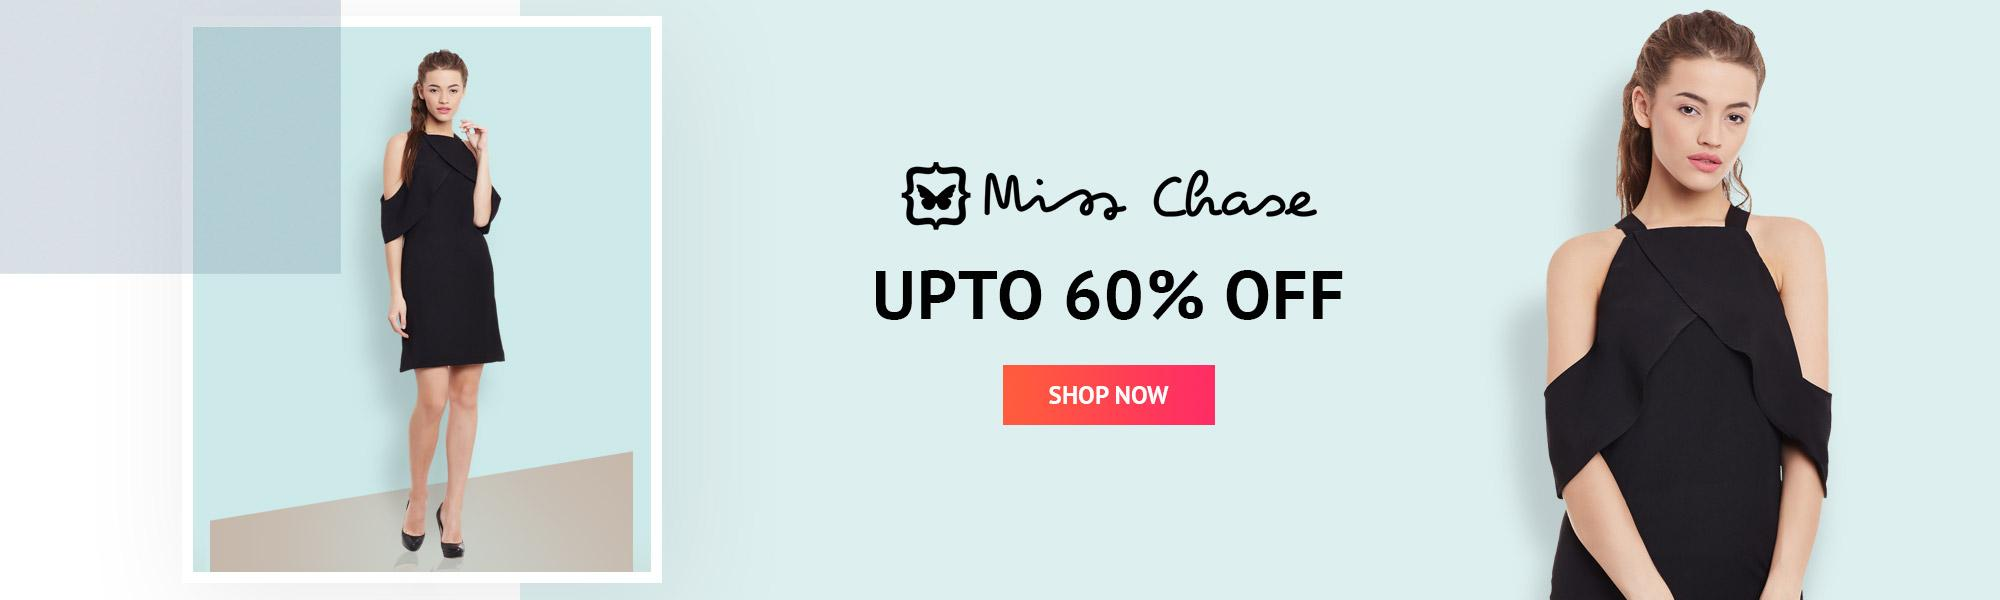 MISS CHASE OFFER